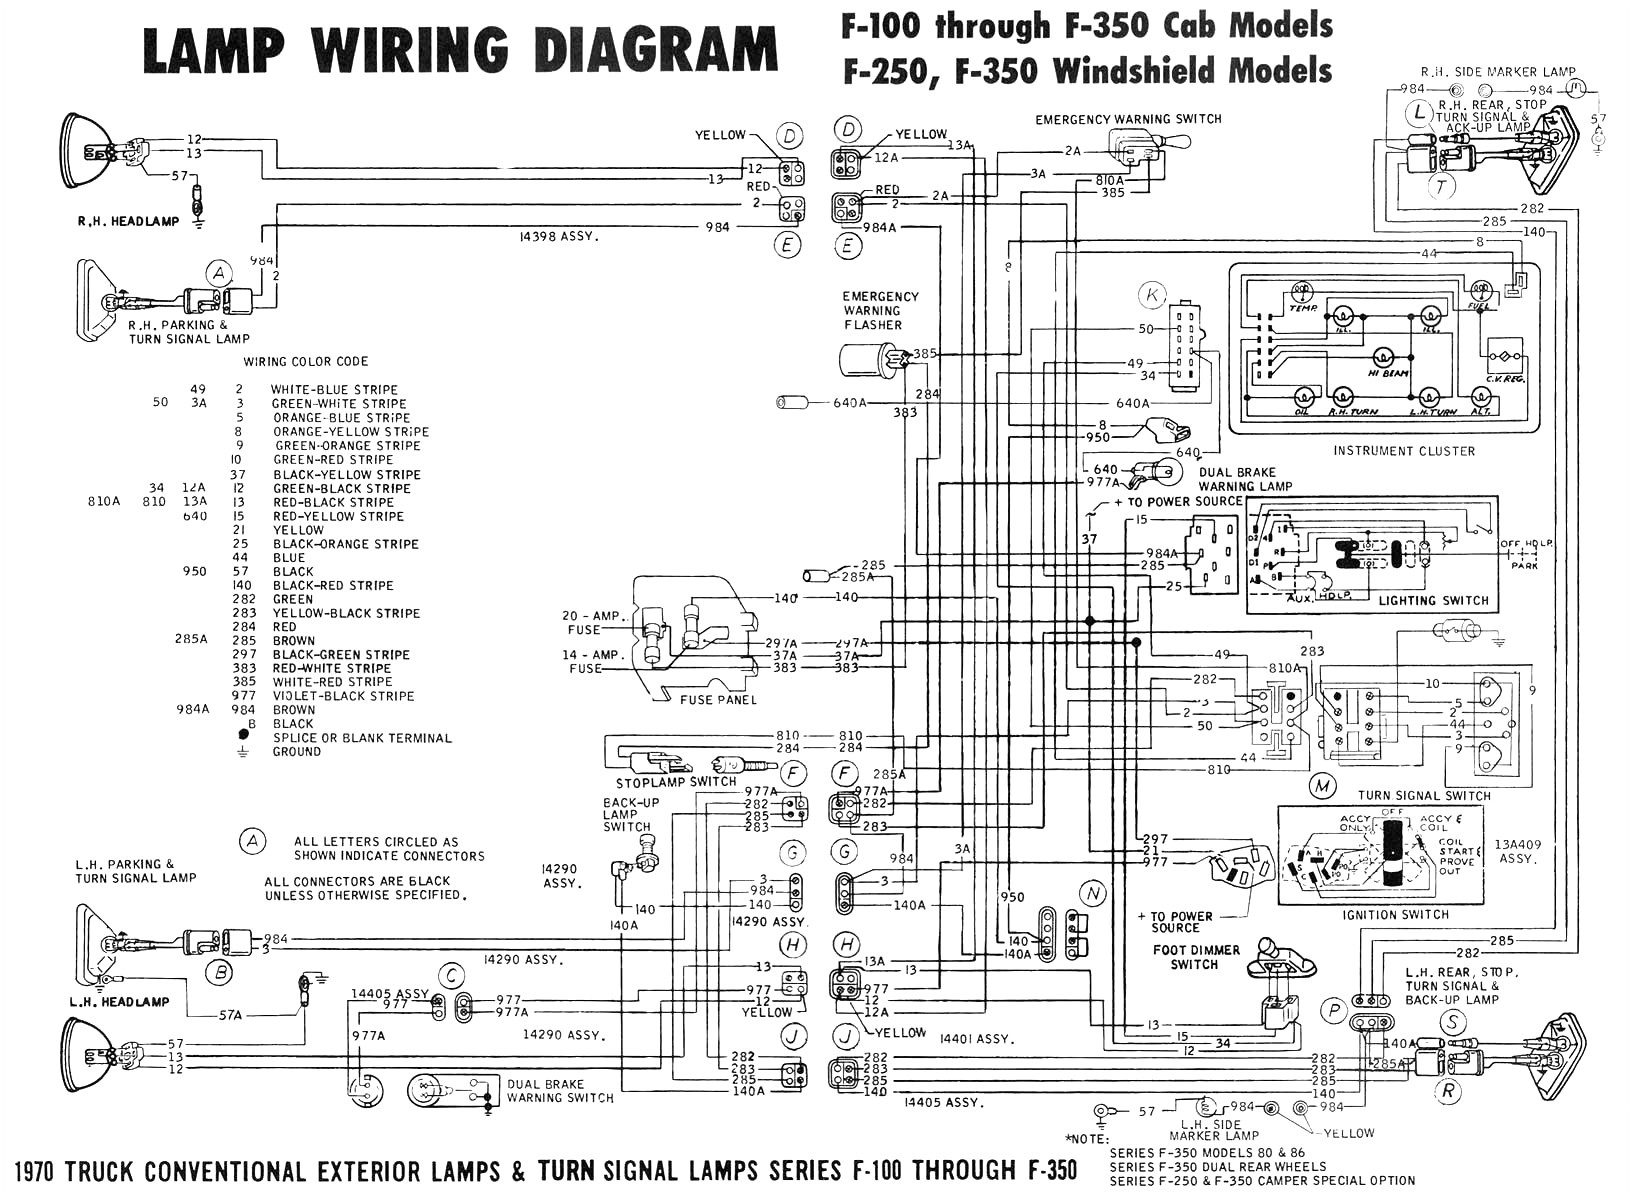 2006 Dodge Dakota Trailer Wiring Diagram